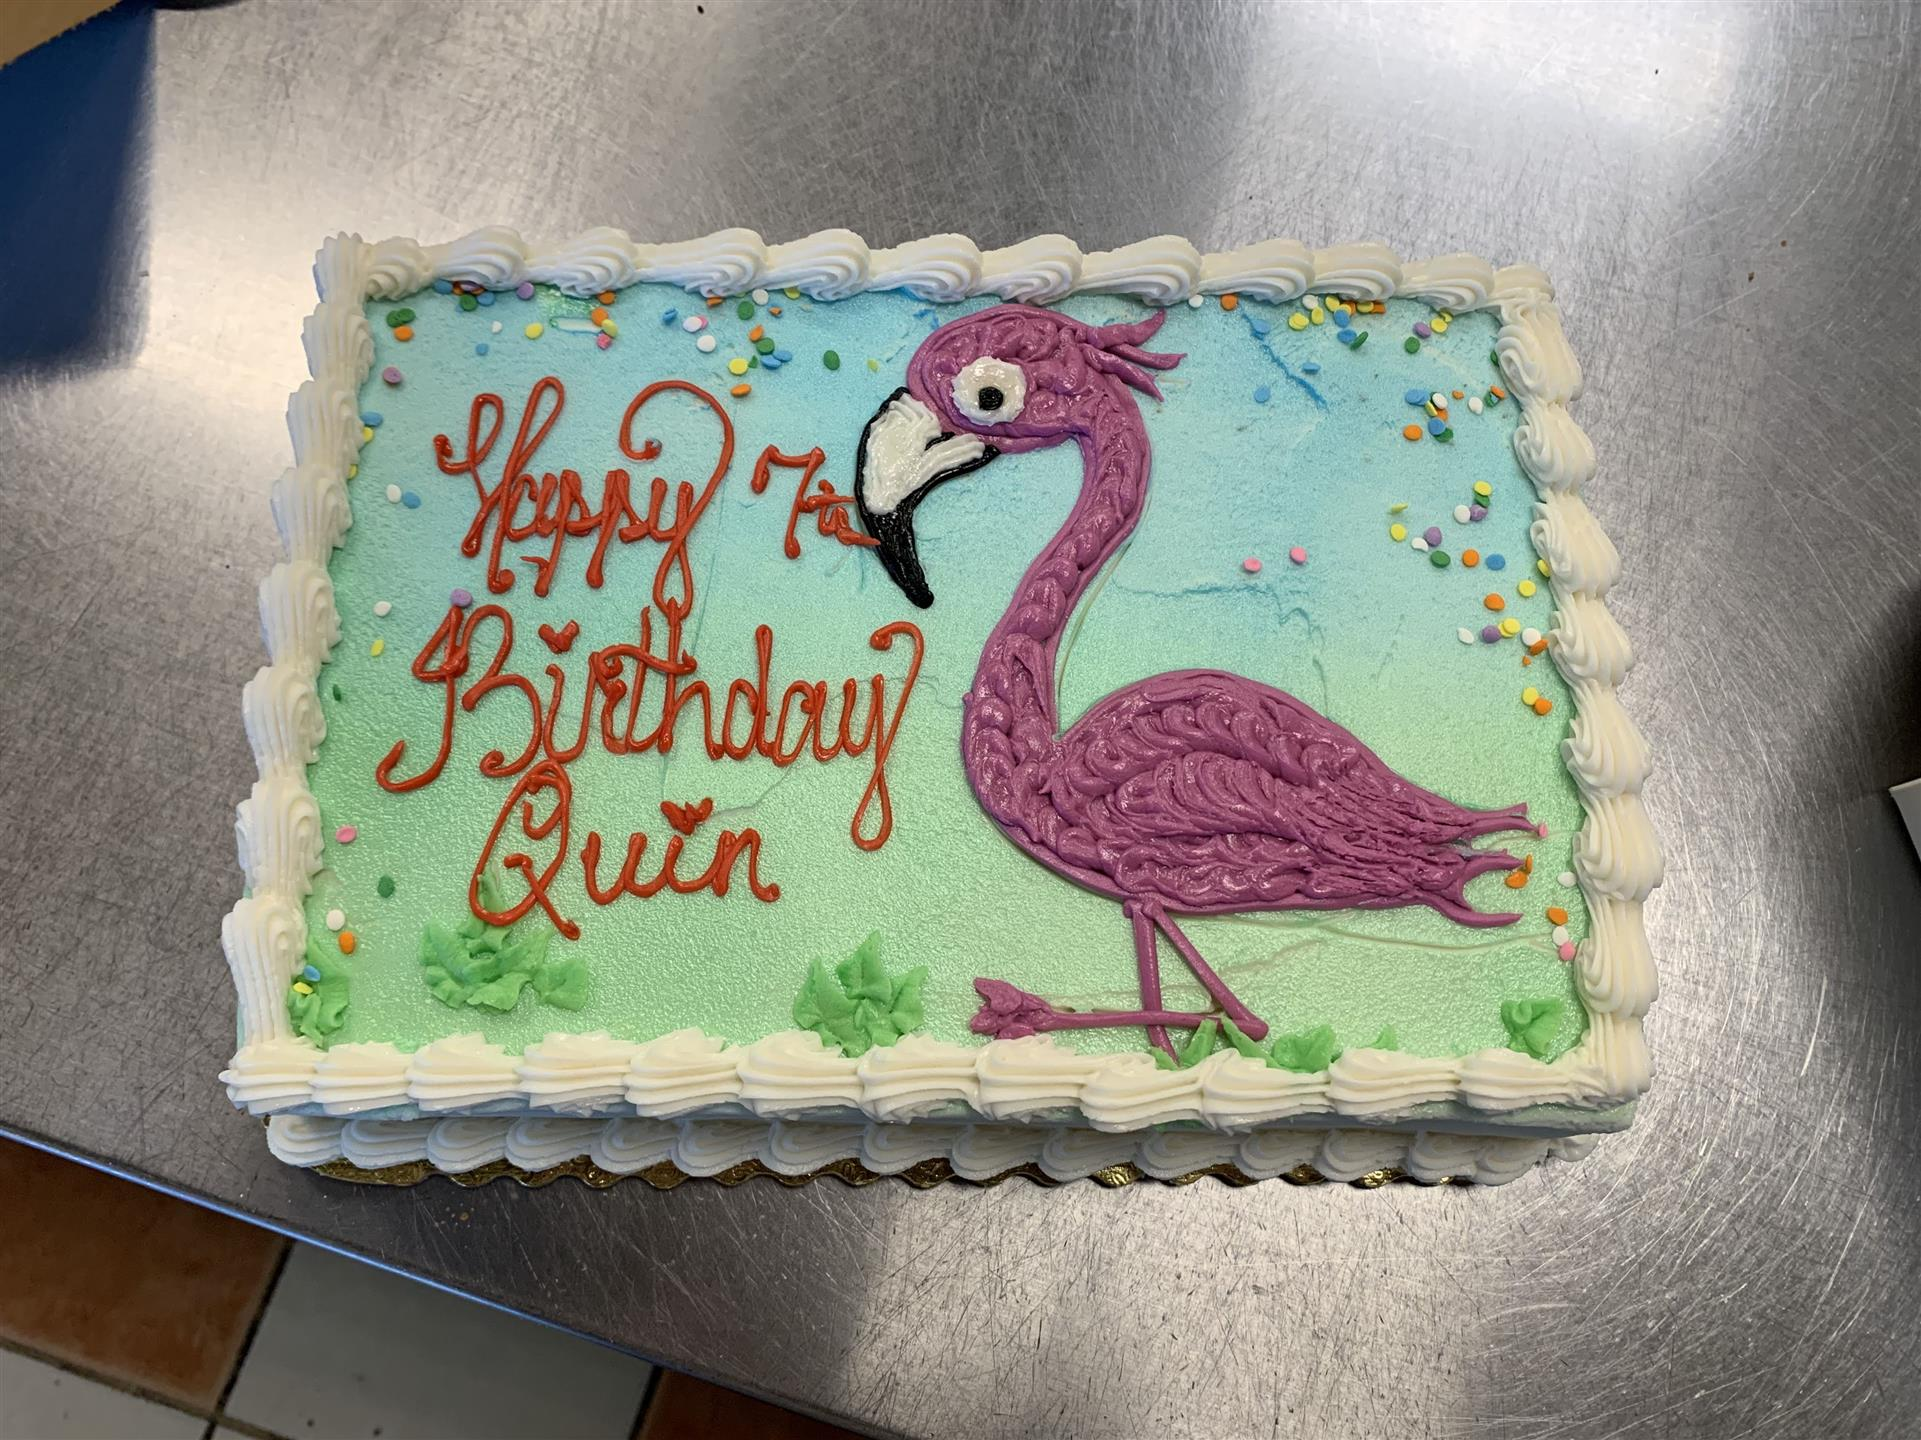 Happy 7th Birthday Quin with a flamingo on top of the cake